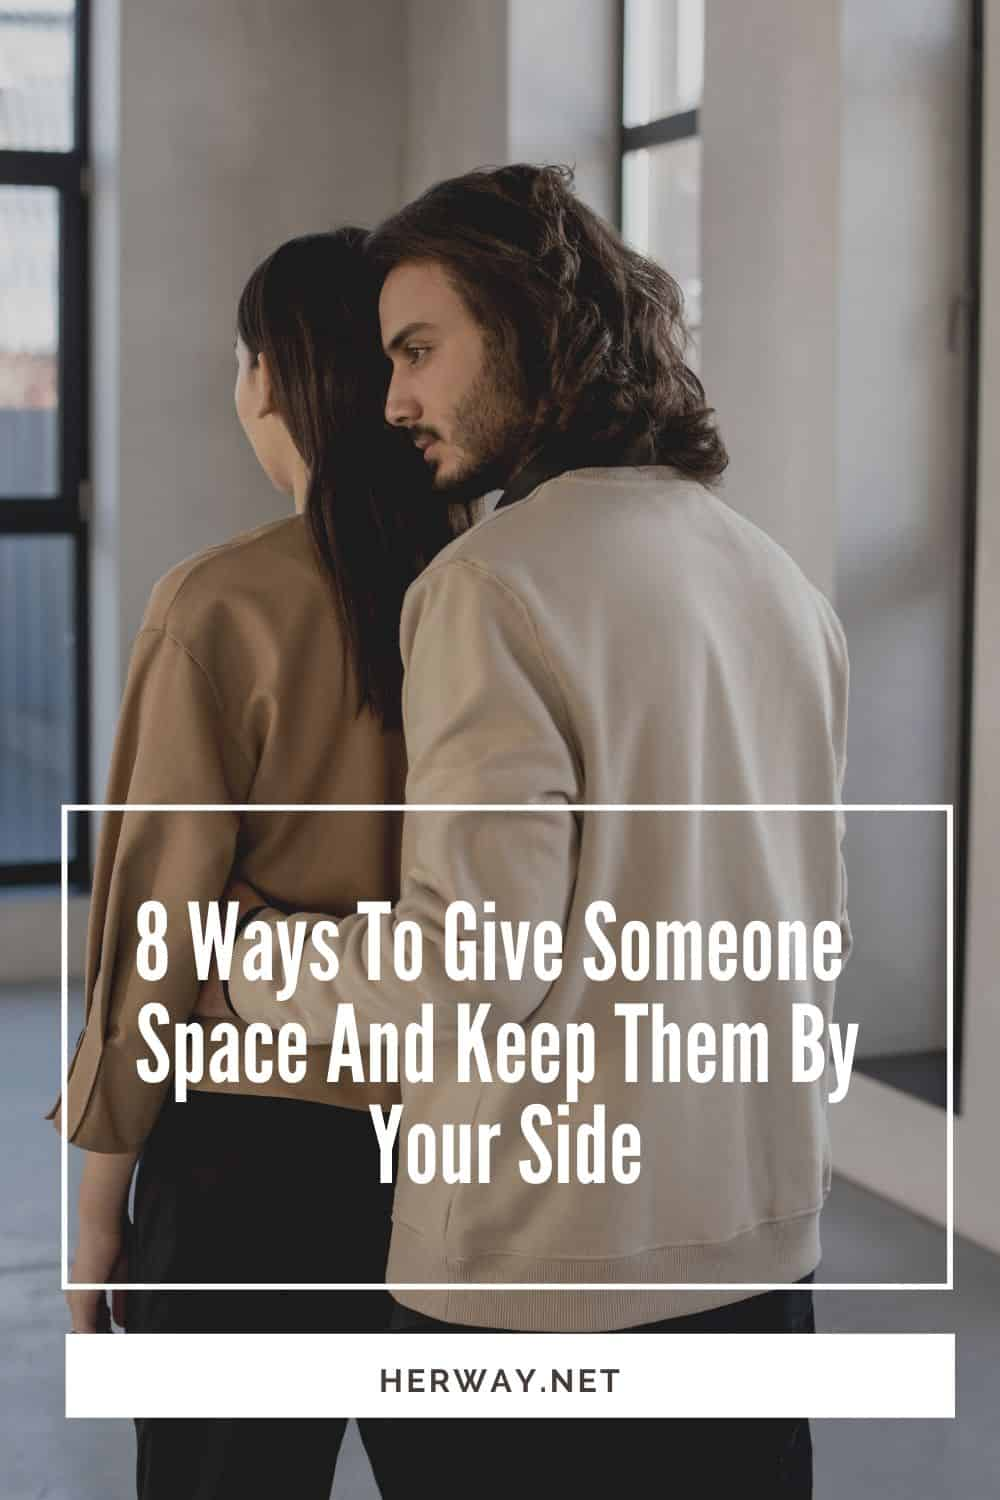 8 Ways To Give Someone Space And Keep Them By Your Side Pinterest